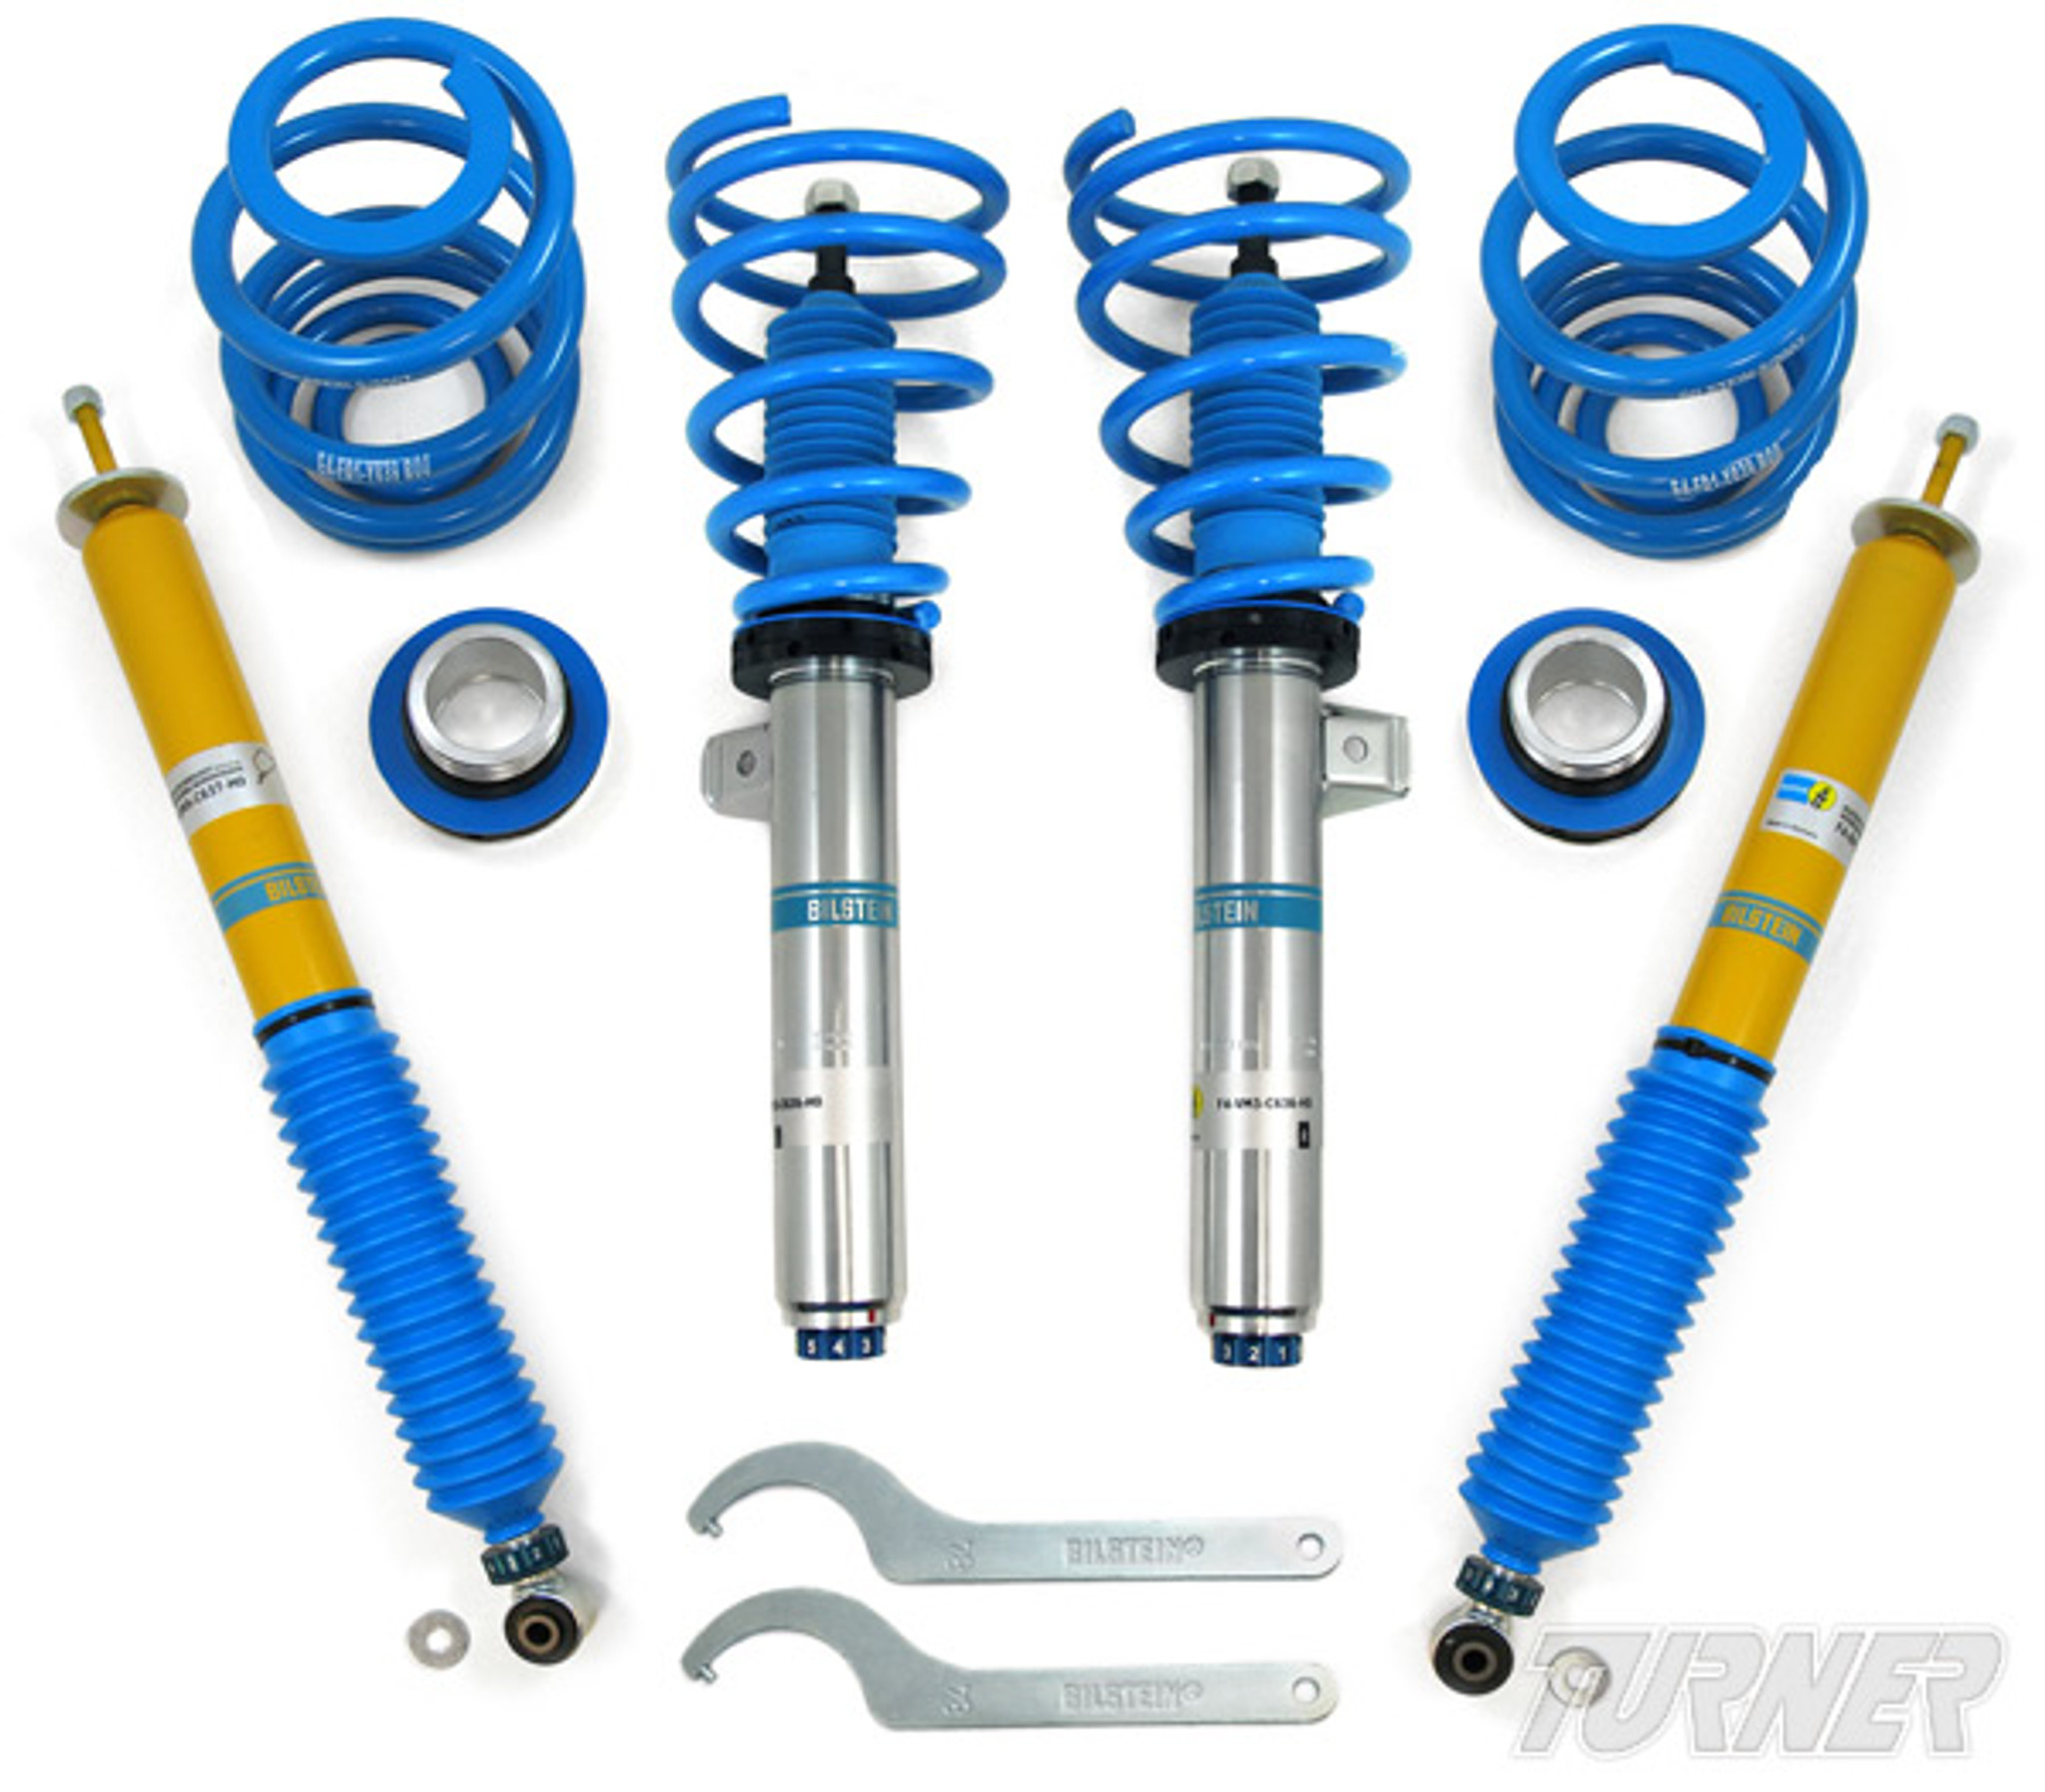 Bilstein B16 coilovers for your BMW F30 3-Series